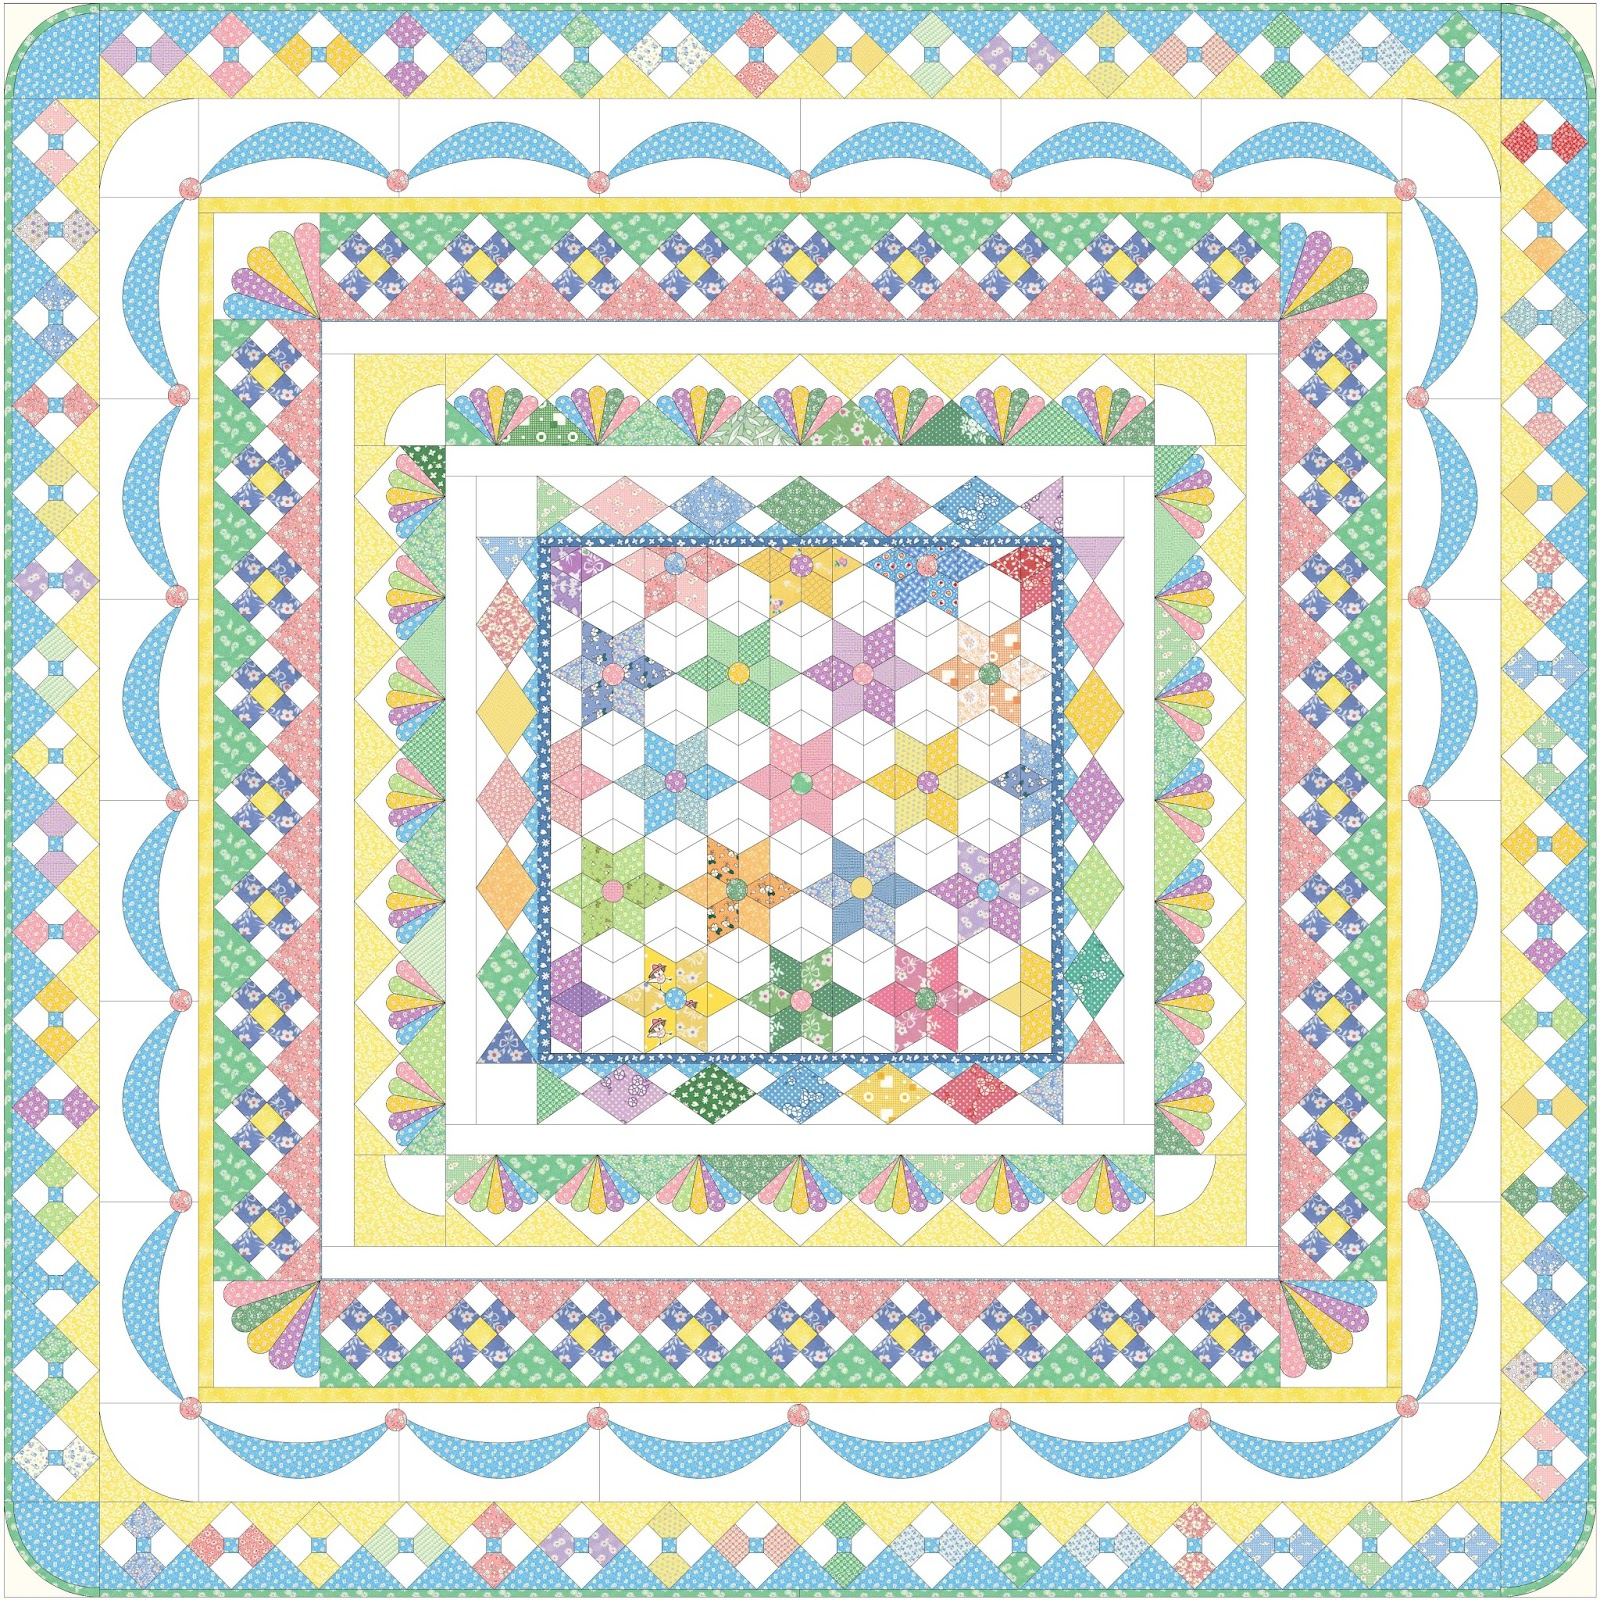 wonder can medallion the quilt work did as ve fairyface how found quilts look i butterfly was out basting going designs to